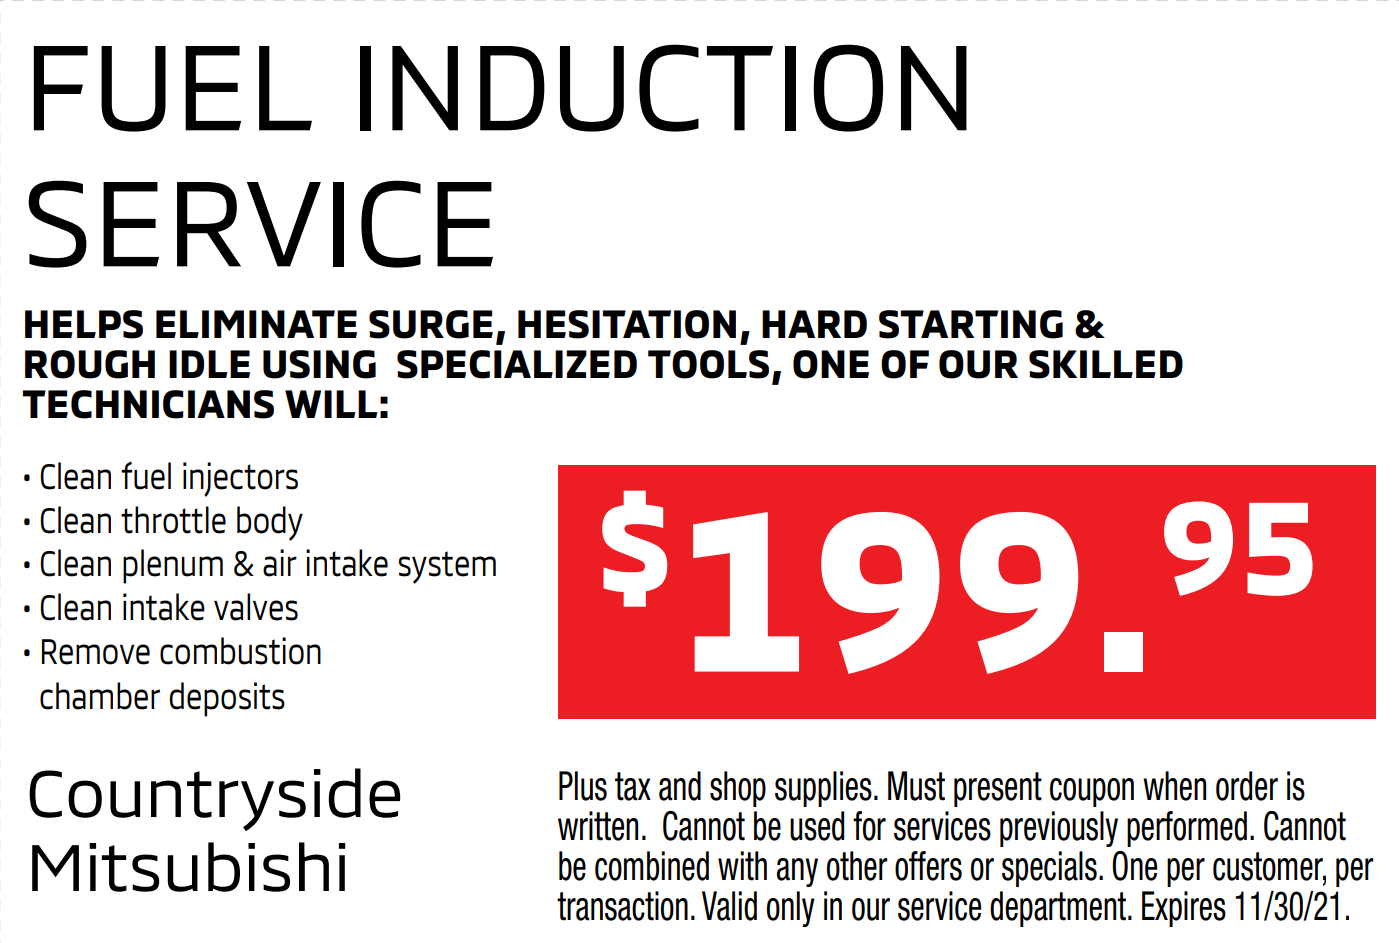 Fuel induction service for $199.95 - clean fuel injectors, throttle body, plenum & air intake system, intake valves, and remove combustion chamber deposits